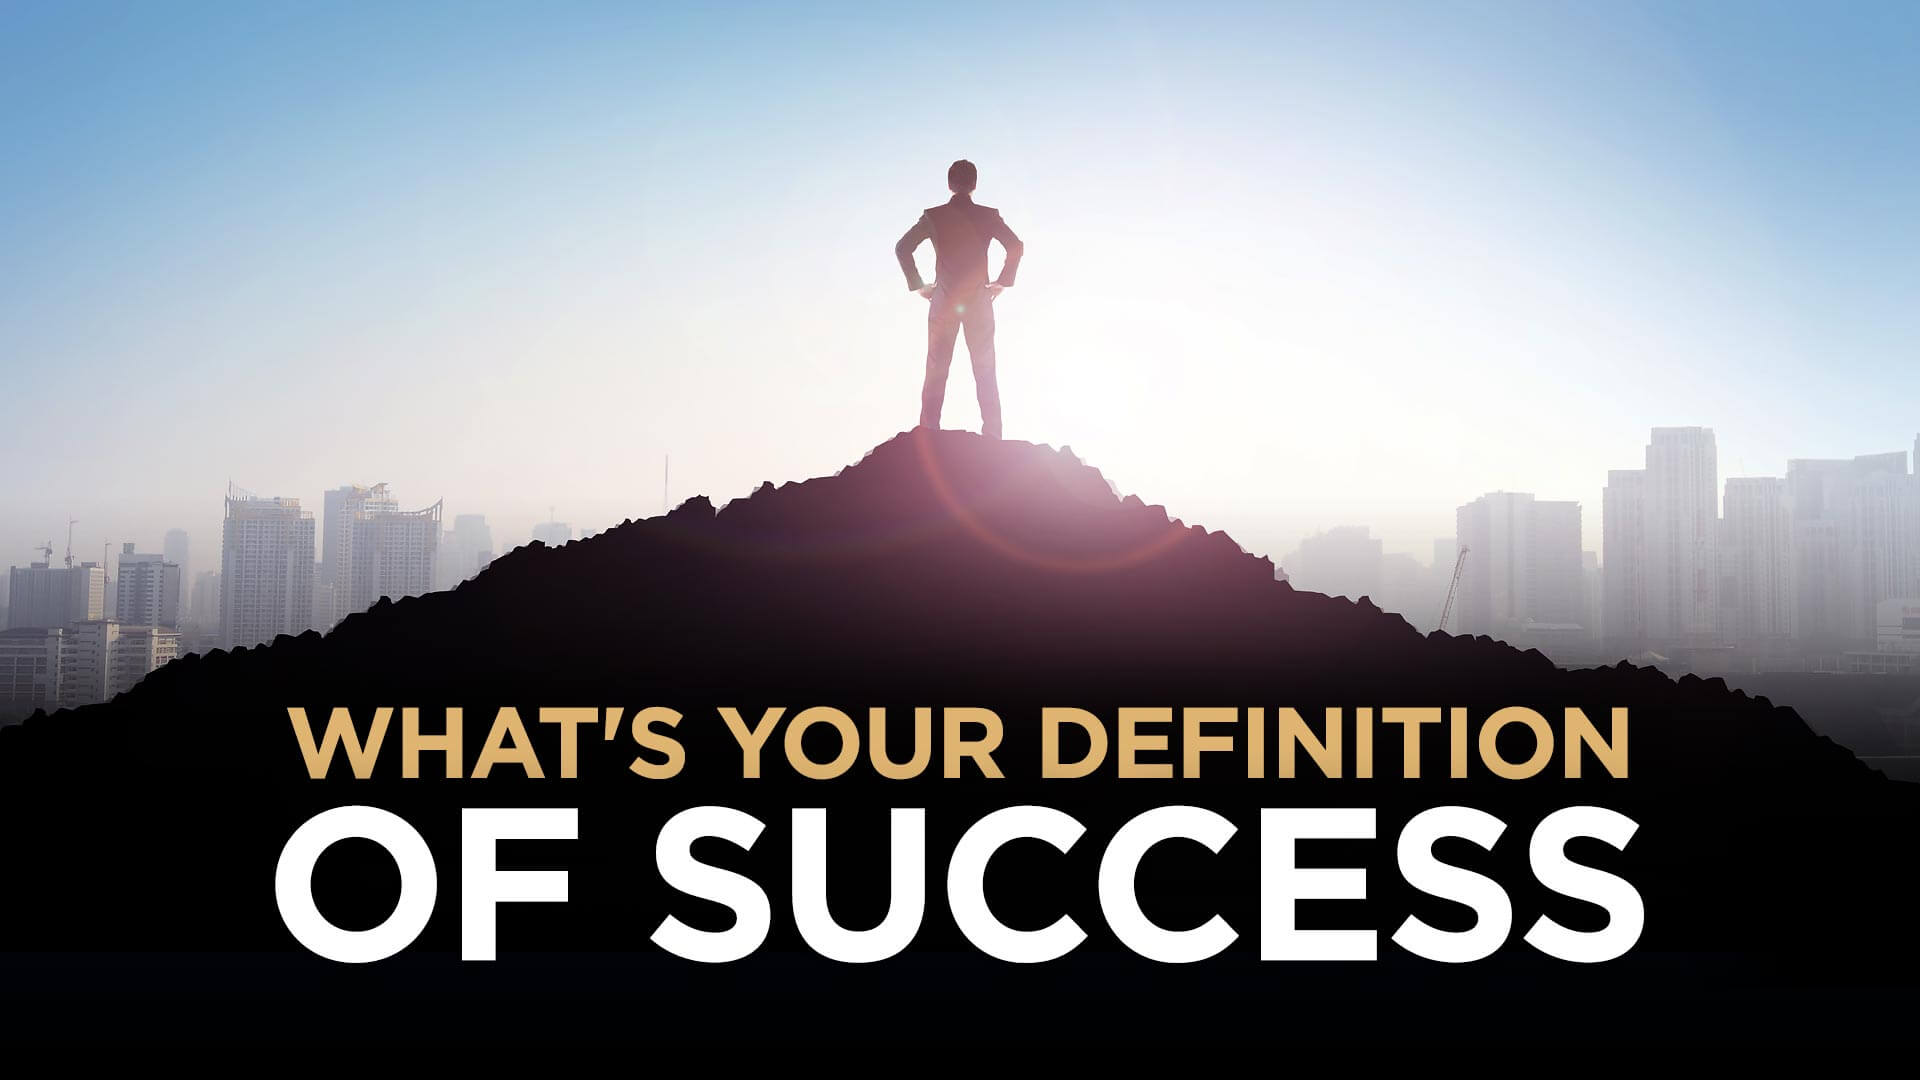 success definition What is the definition of success?